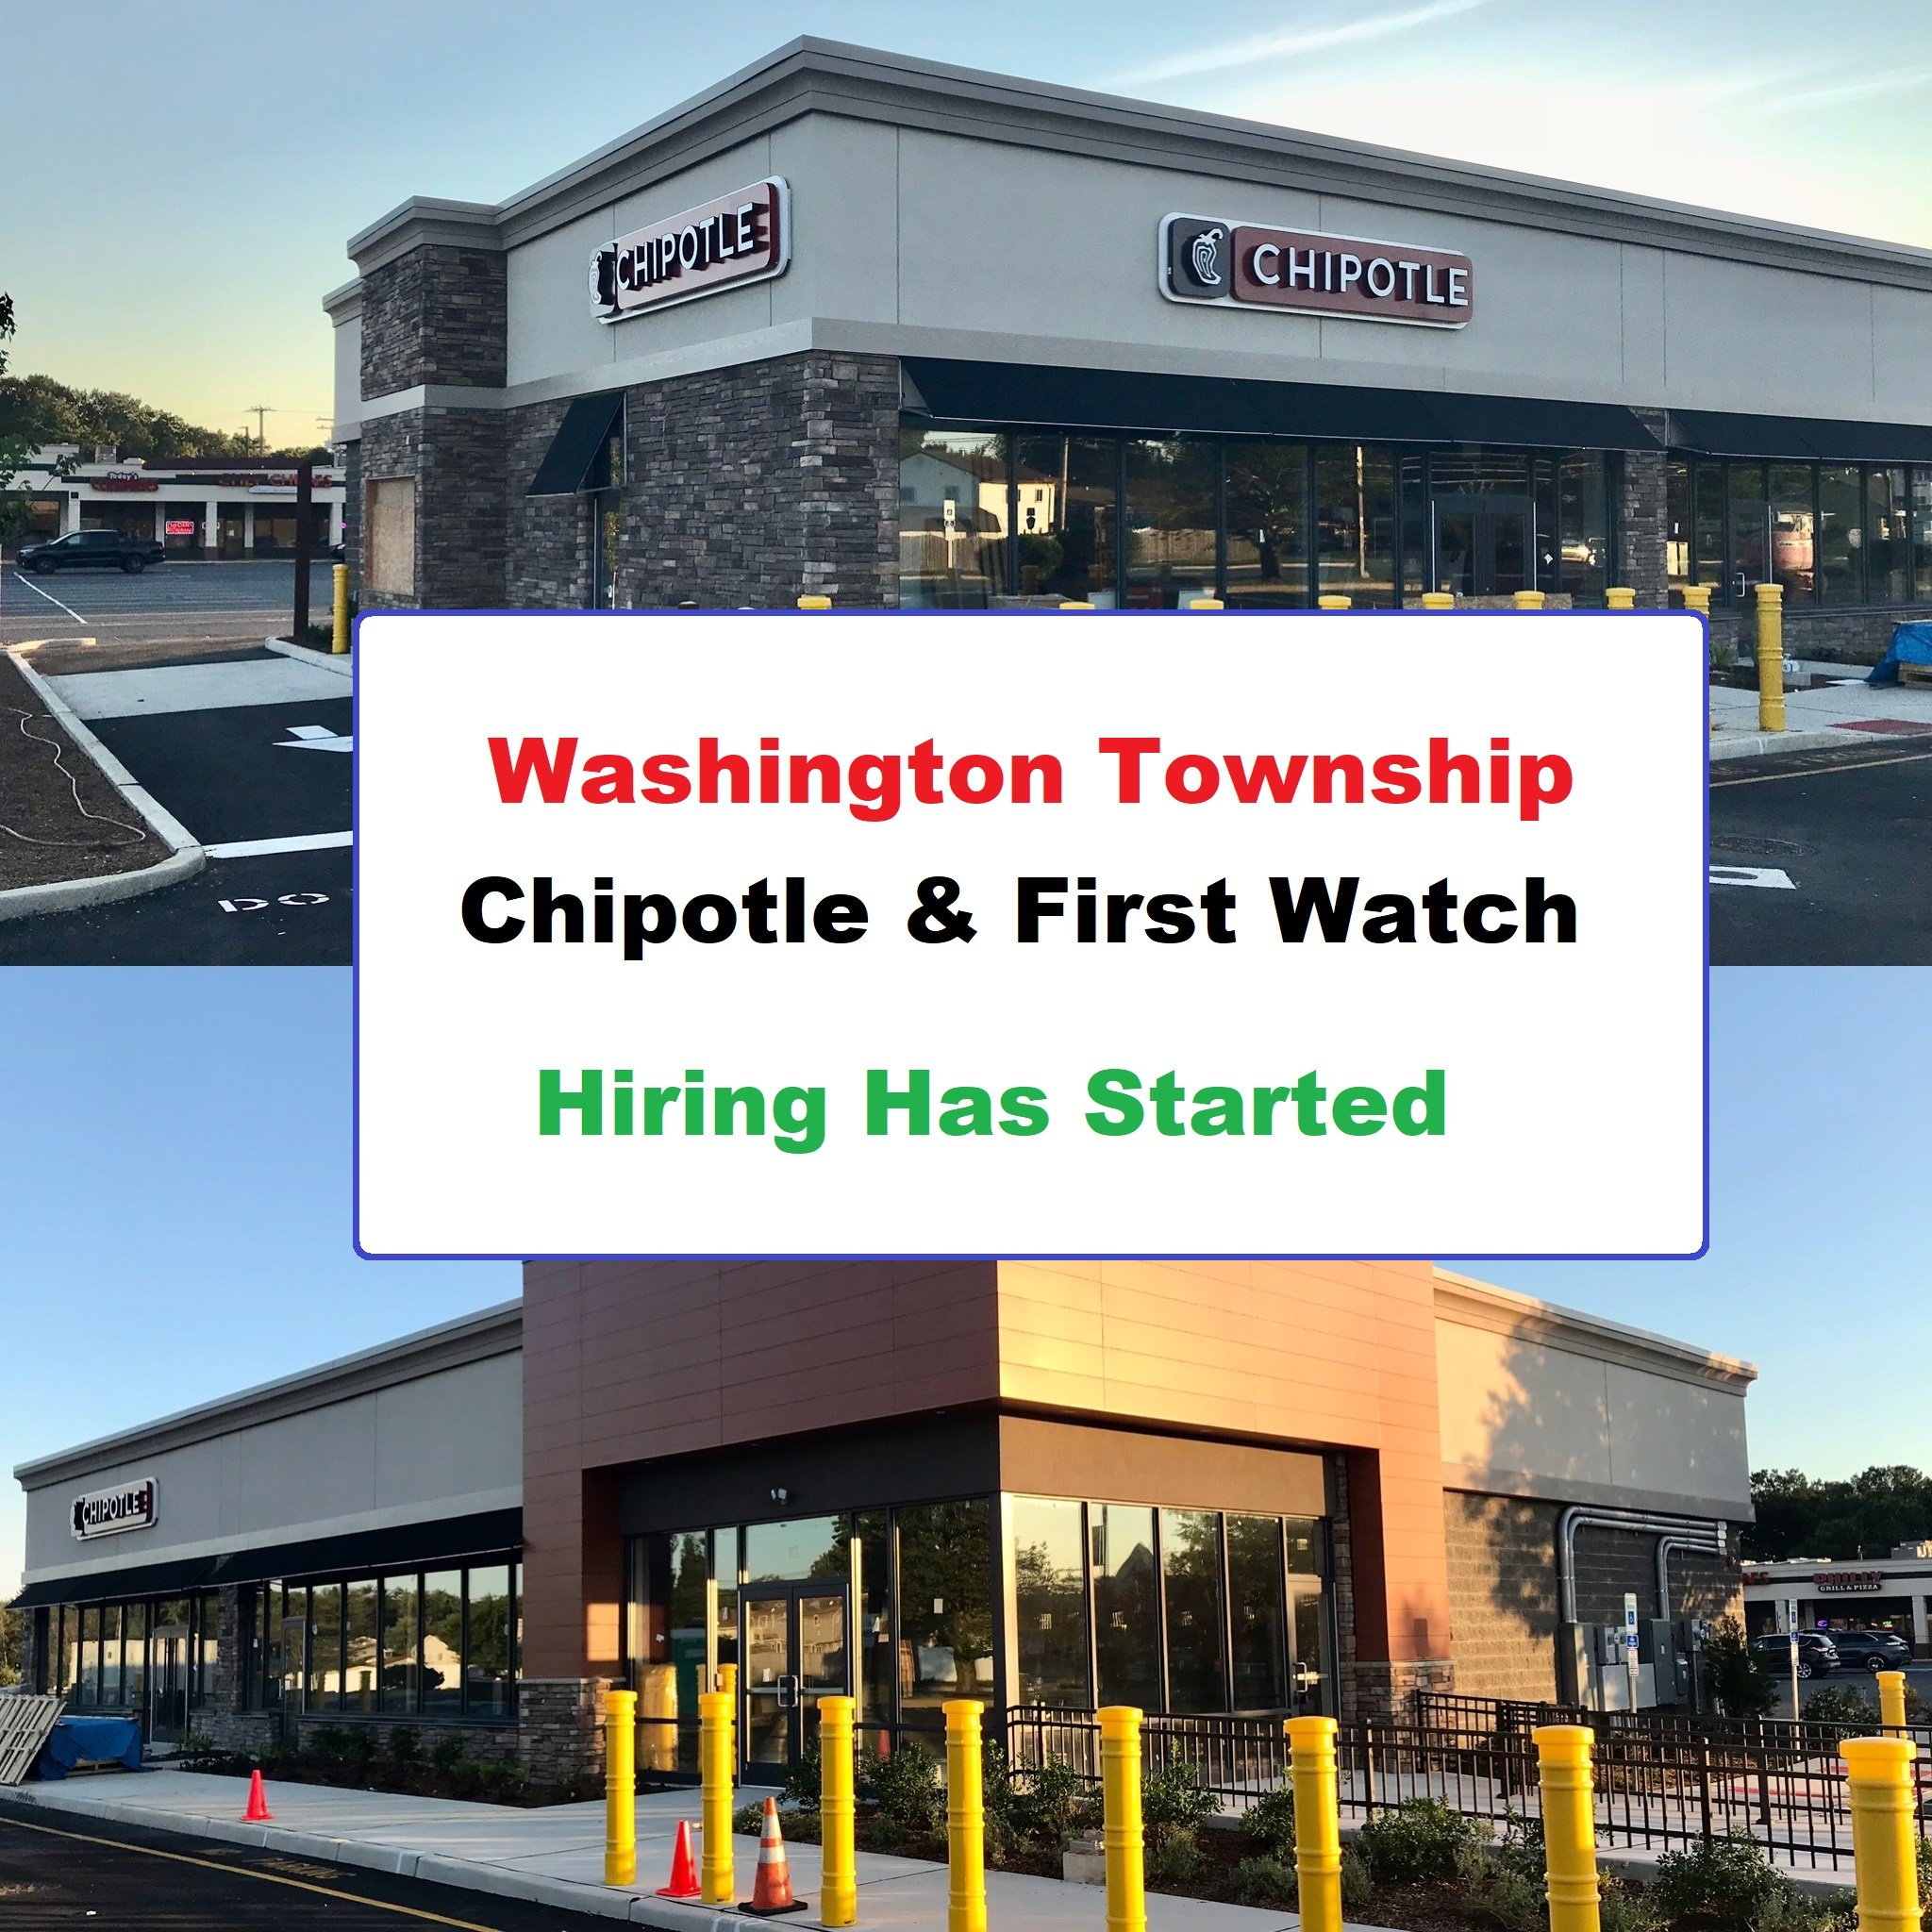 Chipotle and First Watch in Washington Township are Hiring!   Job Links in Article